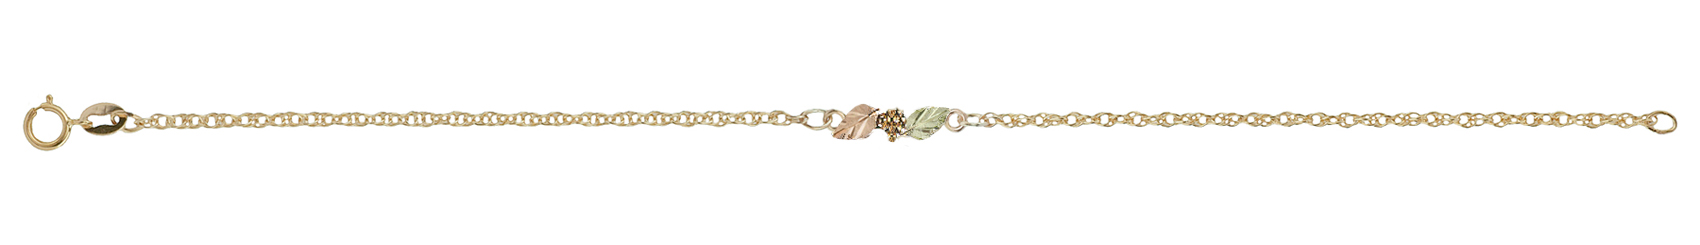 anklet gold bracelets heart in v p